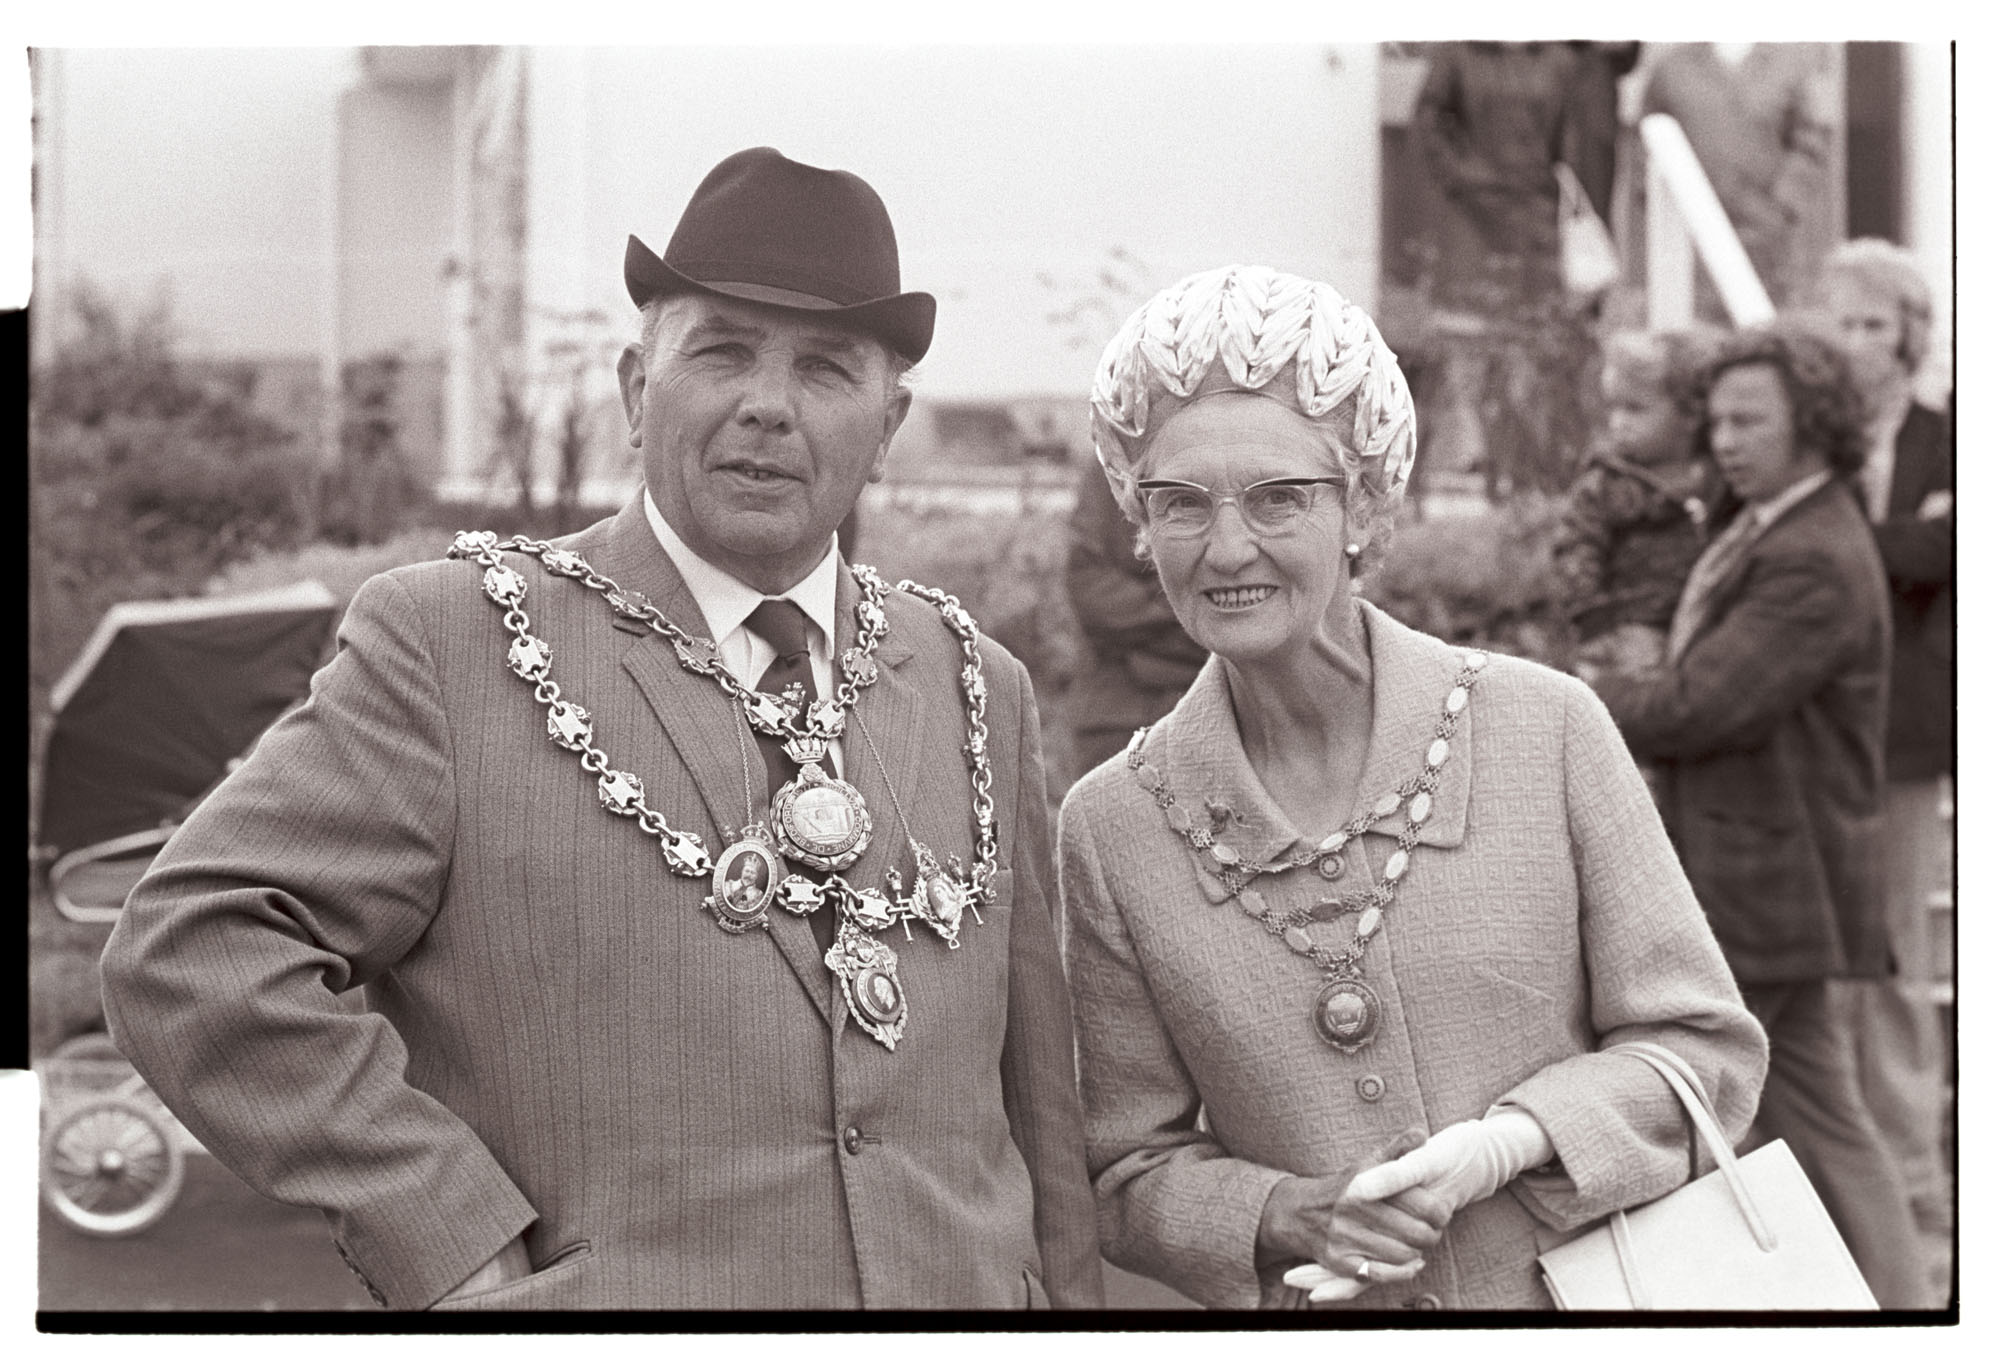 Mayor and Mayoress by James Ravilious